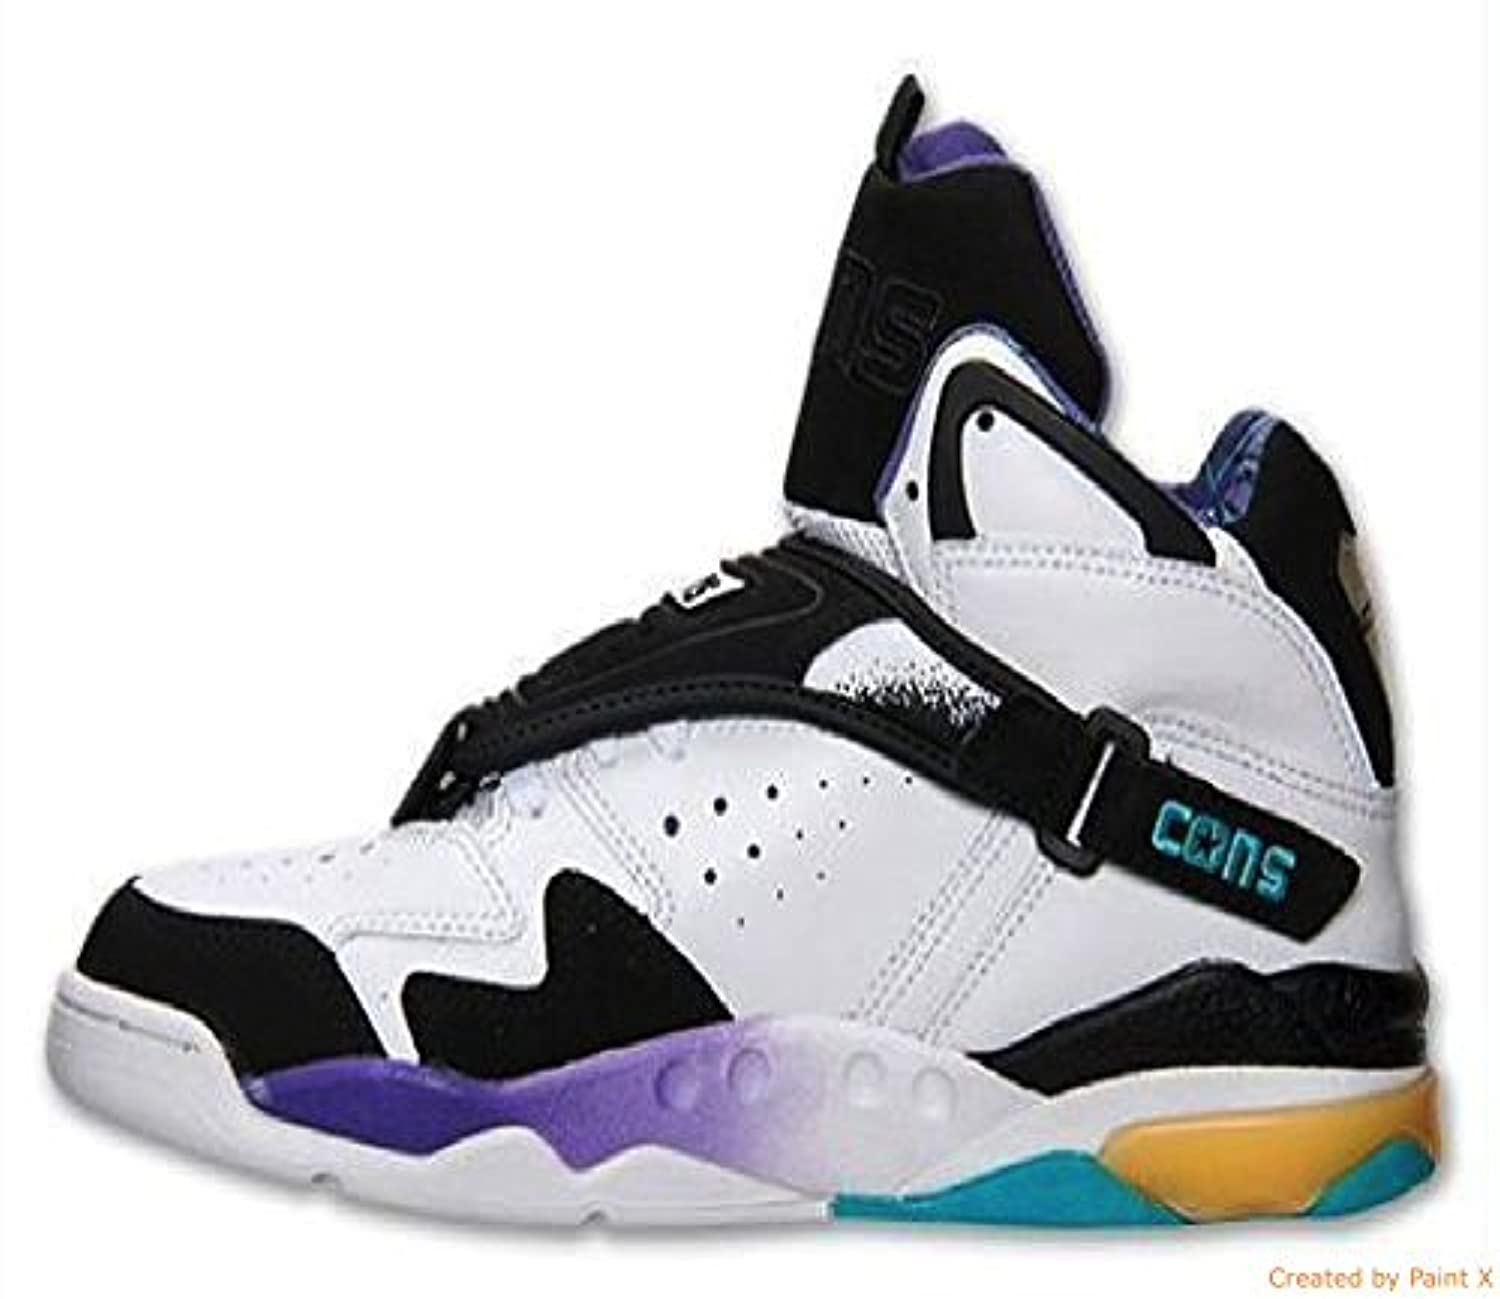 a2931e1edd79f9 ... Converse Aero Jam Hi Grandmama (Larry Johnson Retro) Black White Blue   ...